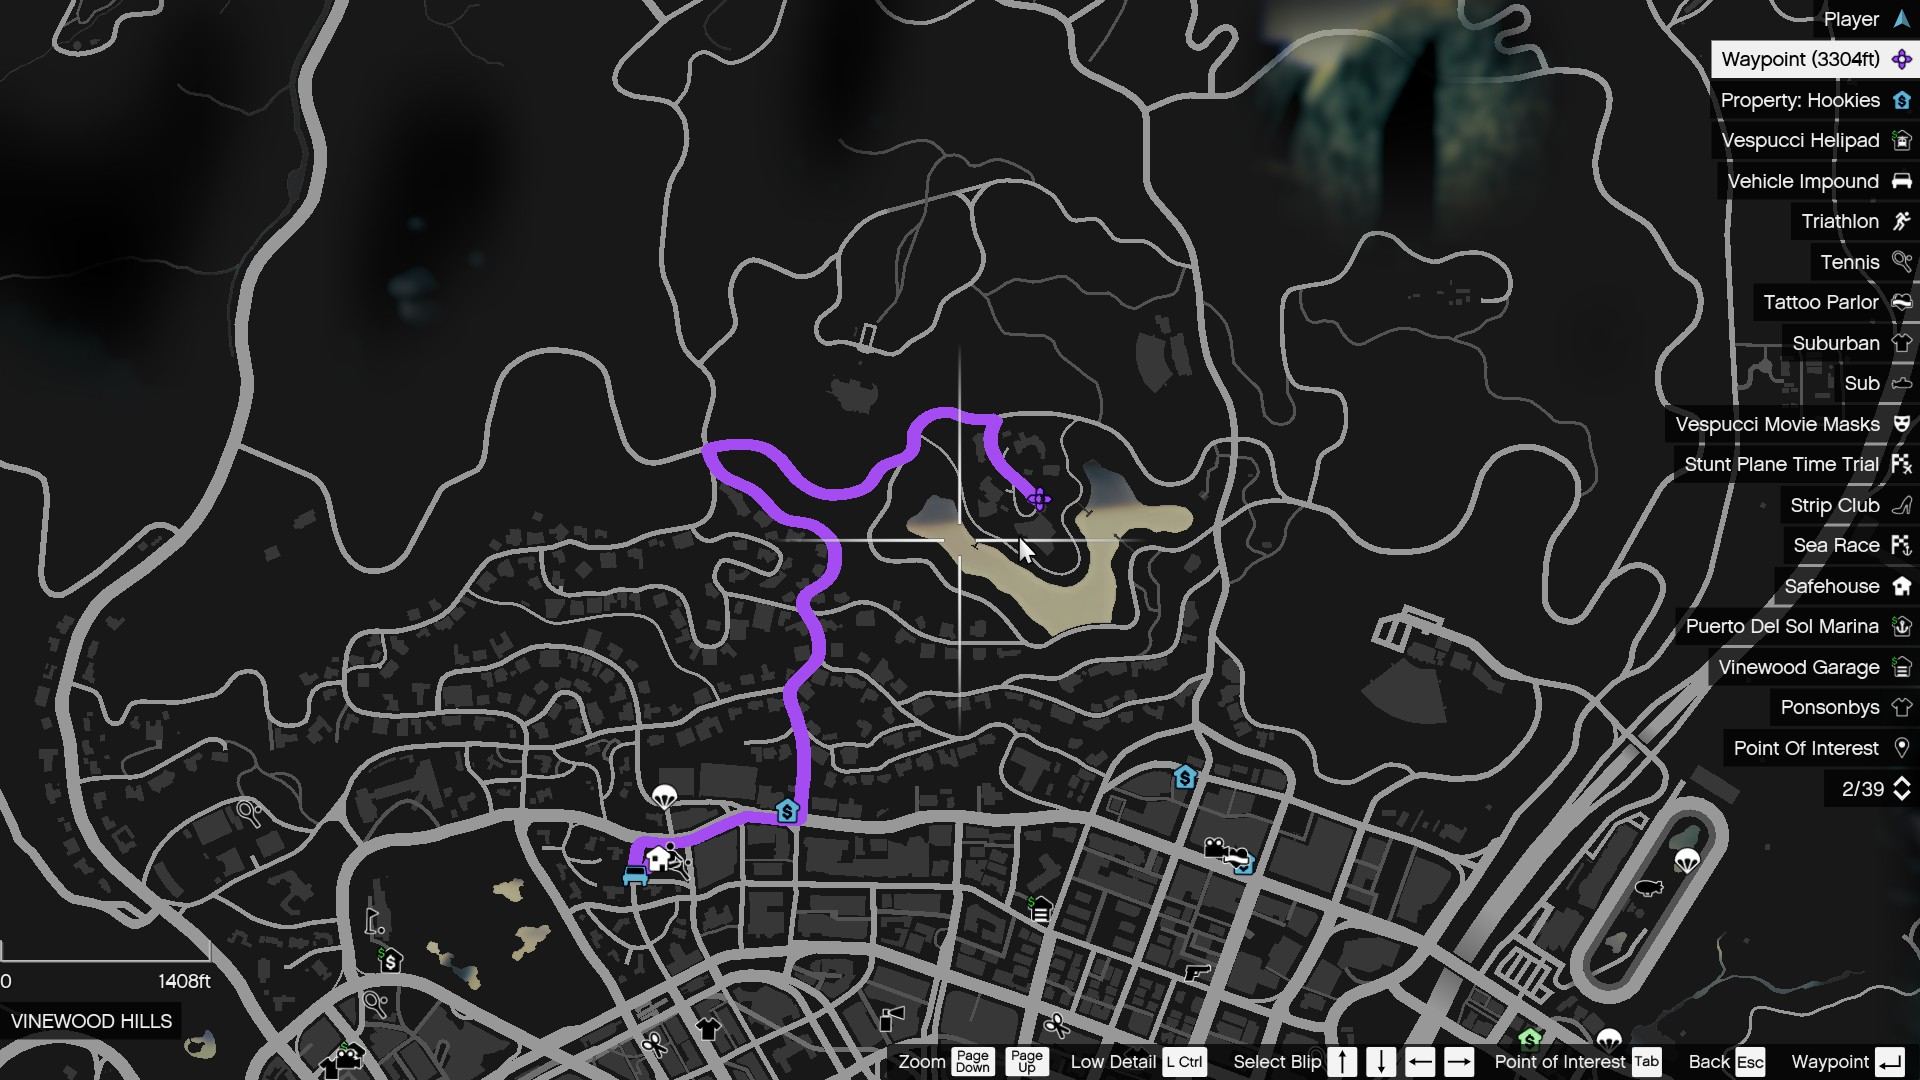 Steam Community :: Guide :: Epsilon Program Car Locations